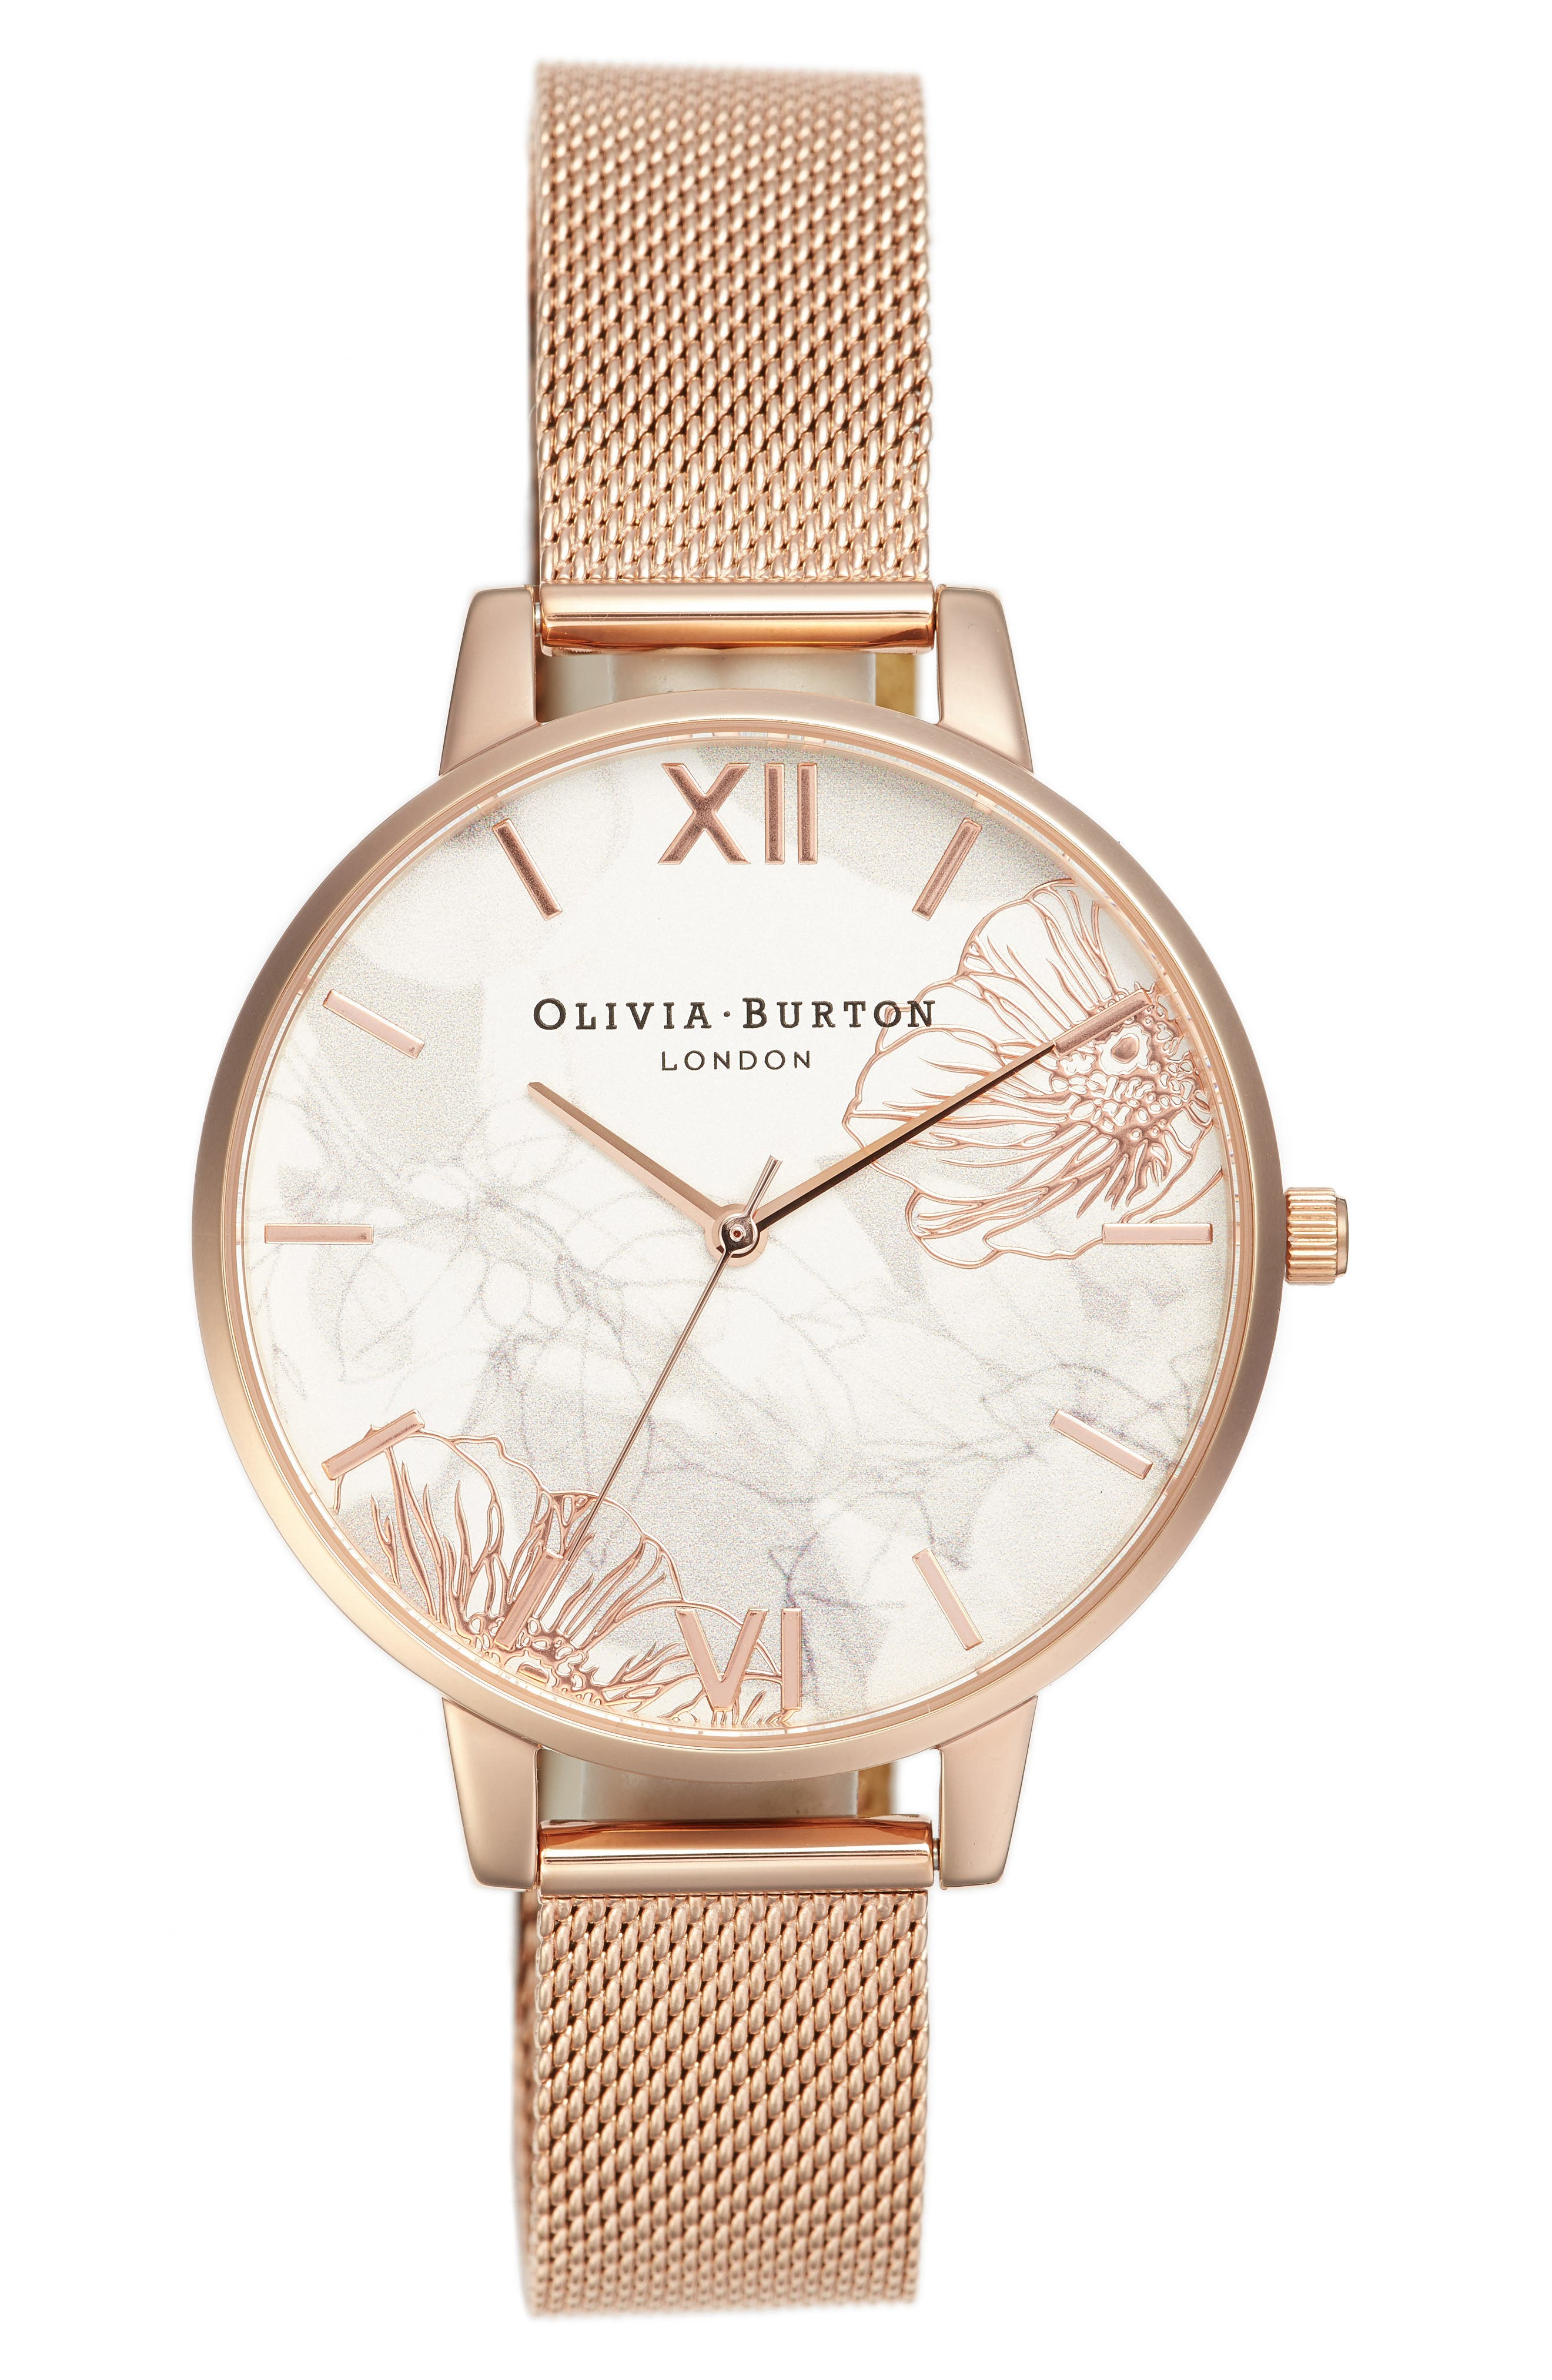 OLIVIA BURTON Oliva Burton Abstract Florals Mesh Bracelet Watch, 38mm, Main, color, ROSE GOLD